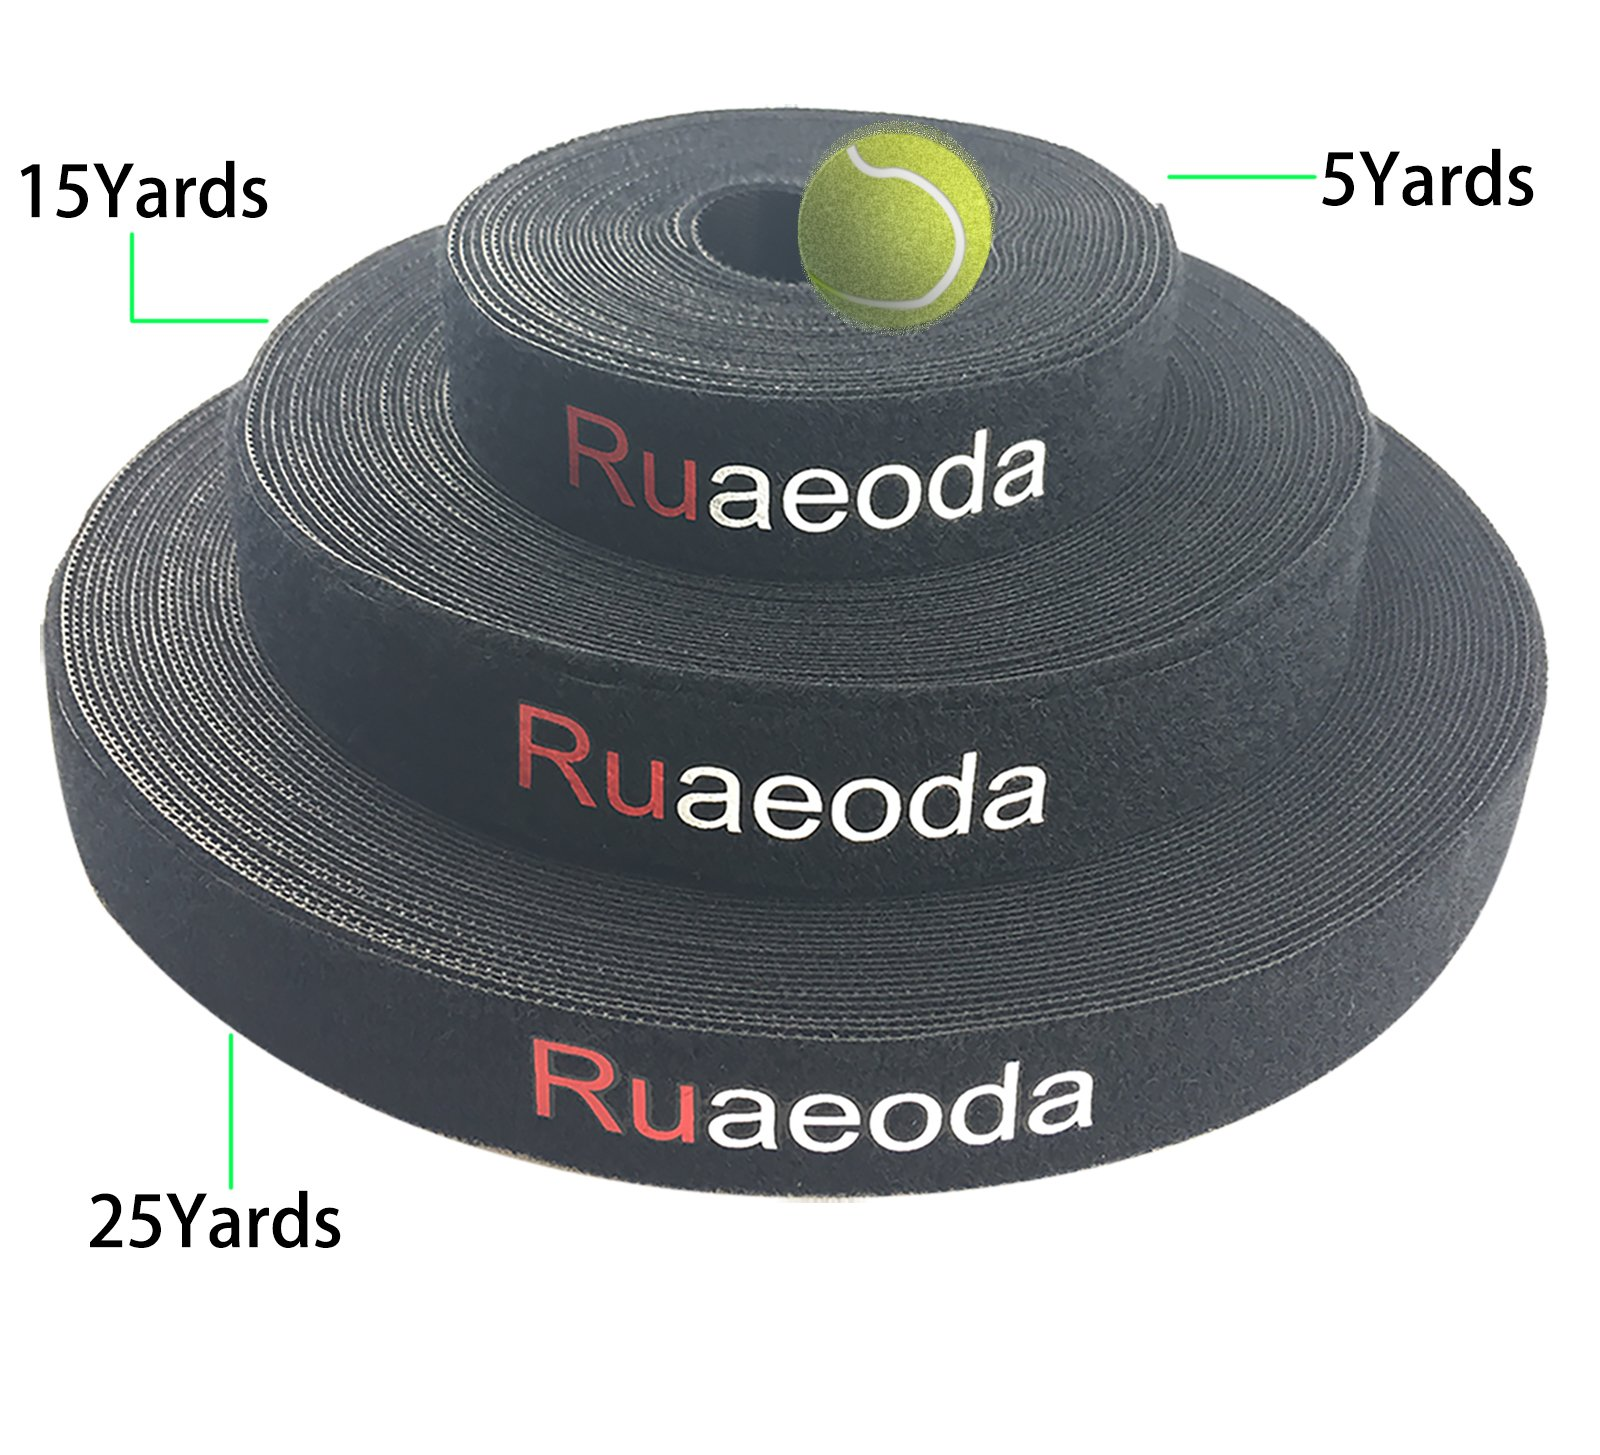 Cable Management Ruaeoda Fastening Tape Cable Tie 25 Yards Reusable Double Side Nylon Strap Power Wire Management 1 Roll Hook(25 Meter/80 Feet)